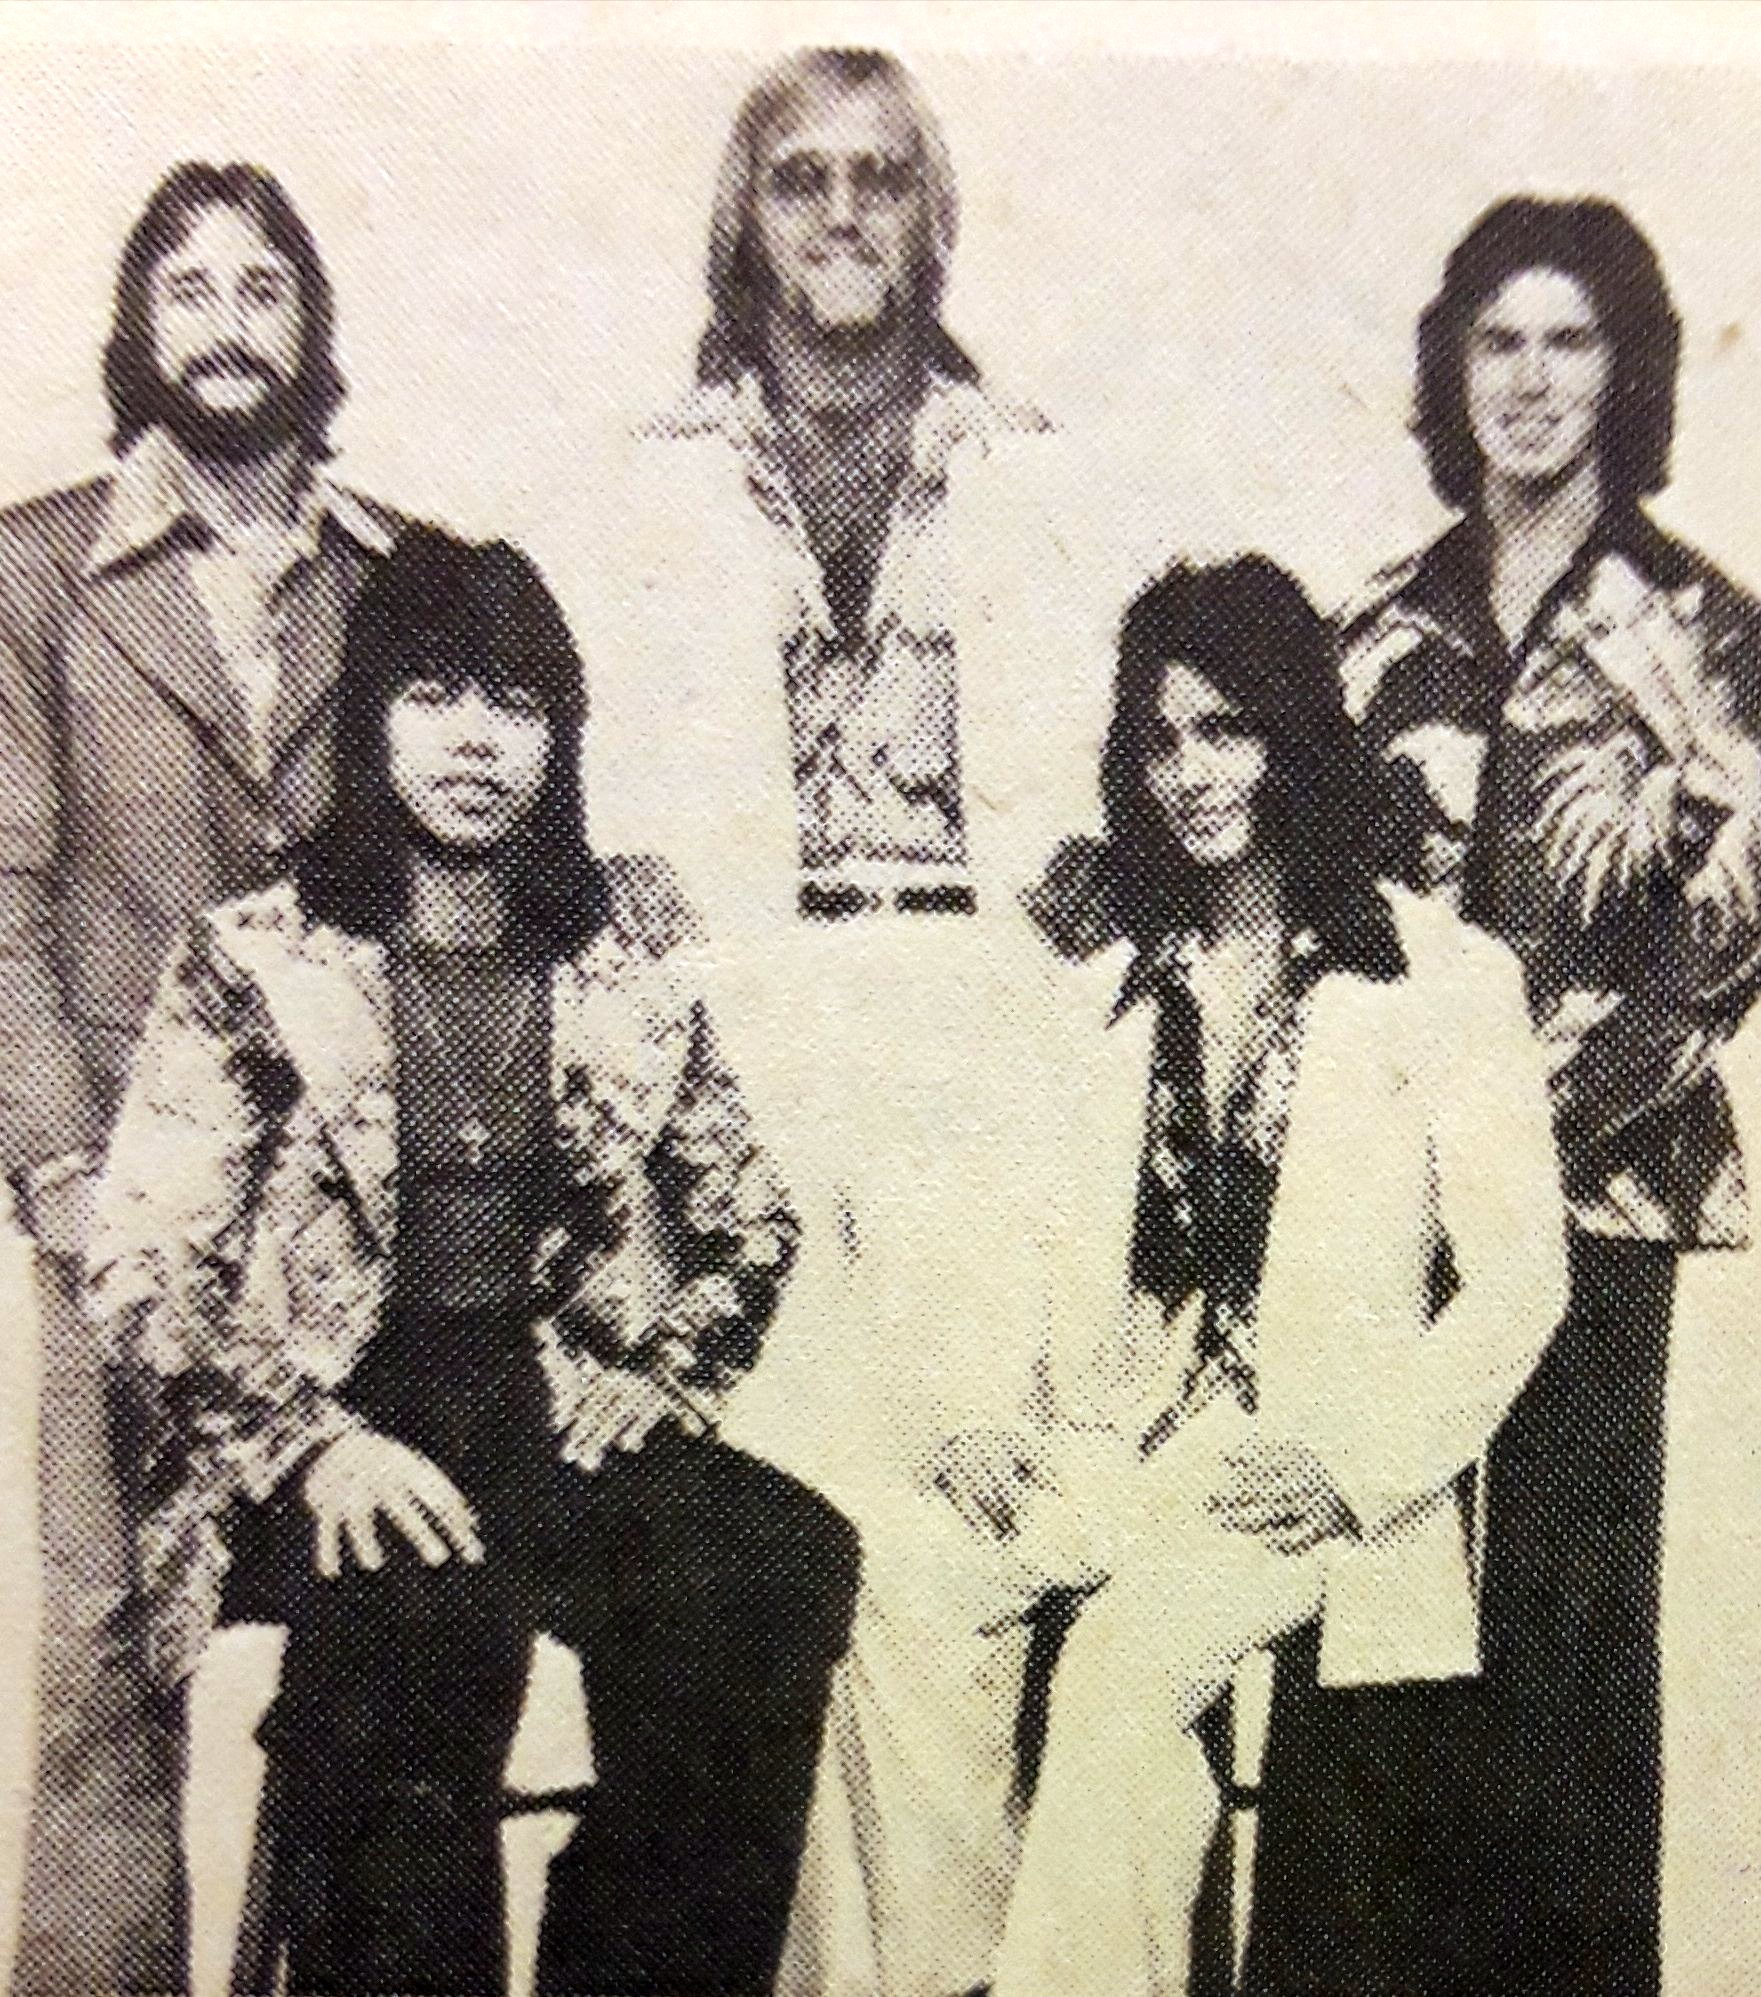 Before finding his calling in the world of professional wrestling as Hulk Hogan, Terry Bollea was the bass player of band called Ruckus based out of Tampa, Florida.